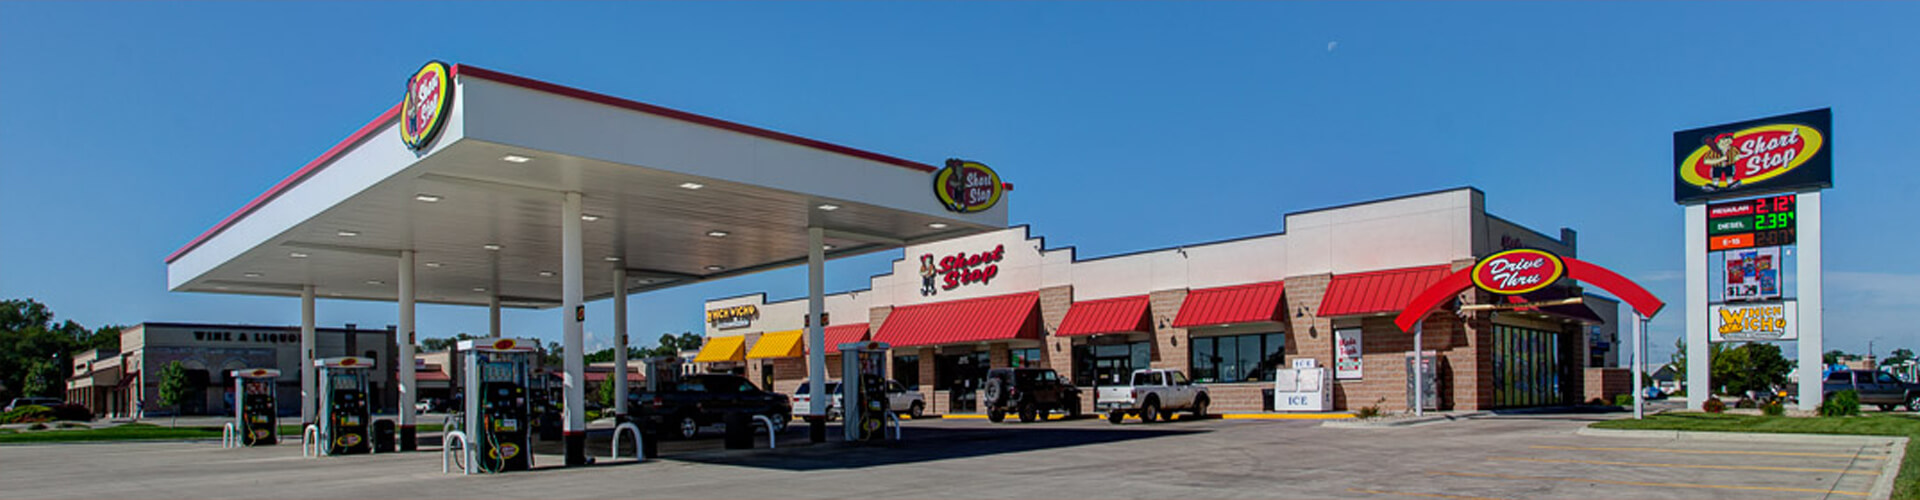 view of short stop convenience store and gas pumps on a bright sunny with a cloudless blue sky